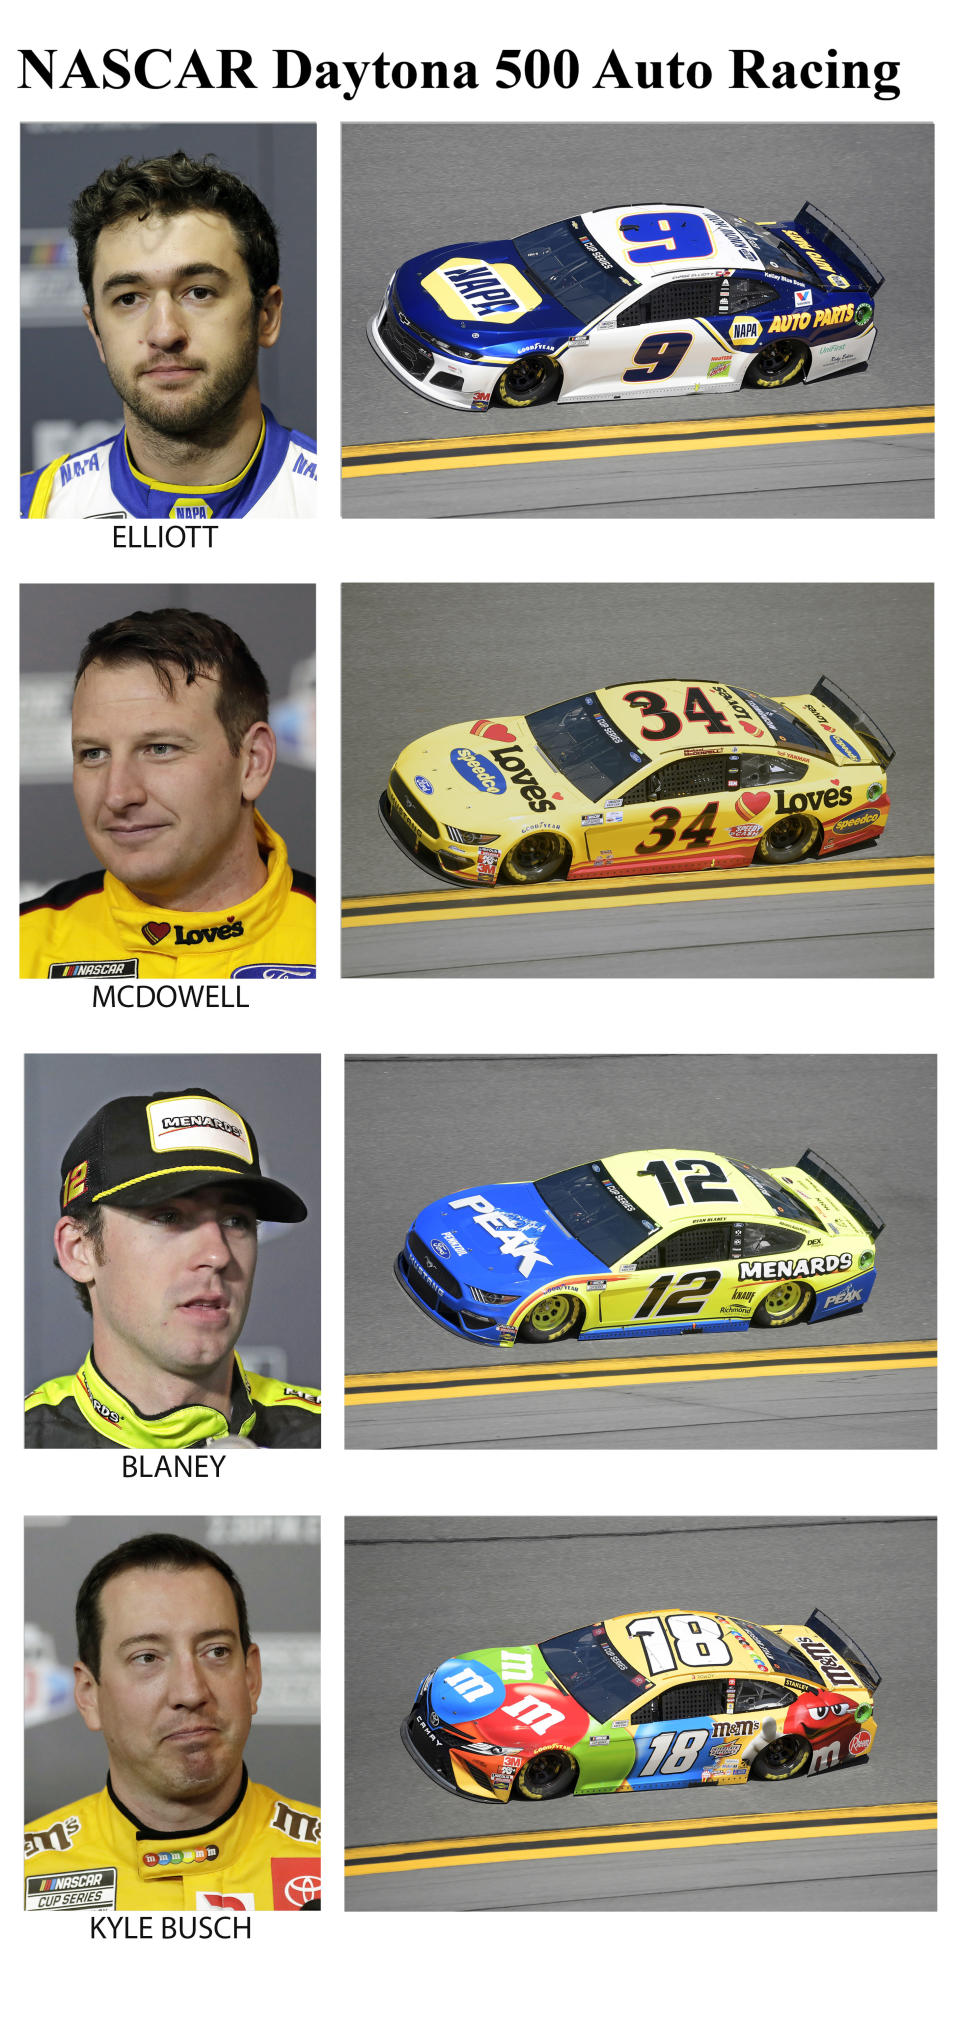 These photos taken in February 2020 show drivers in the starting lineup for Sunday's NASCAR Daytona 500 auto race in Daytona Beach, Fla. From top are Chase Elliott, 25th position, Michael McDowell, 26th position; Ryan Blaney, 27th position and Kyle Busch, 28th position. (AP Photo)